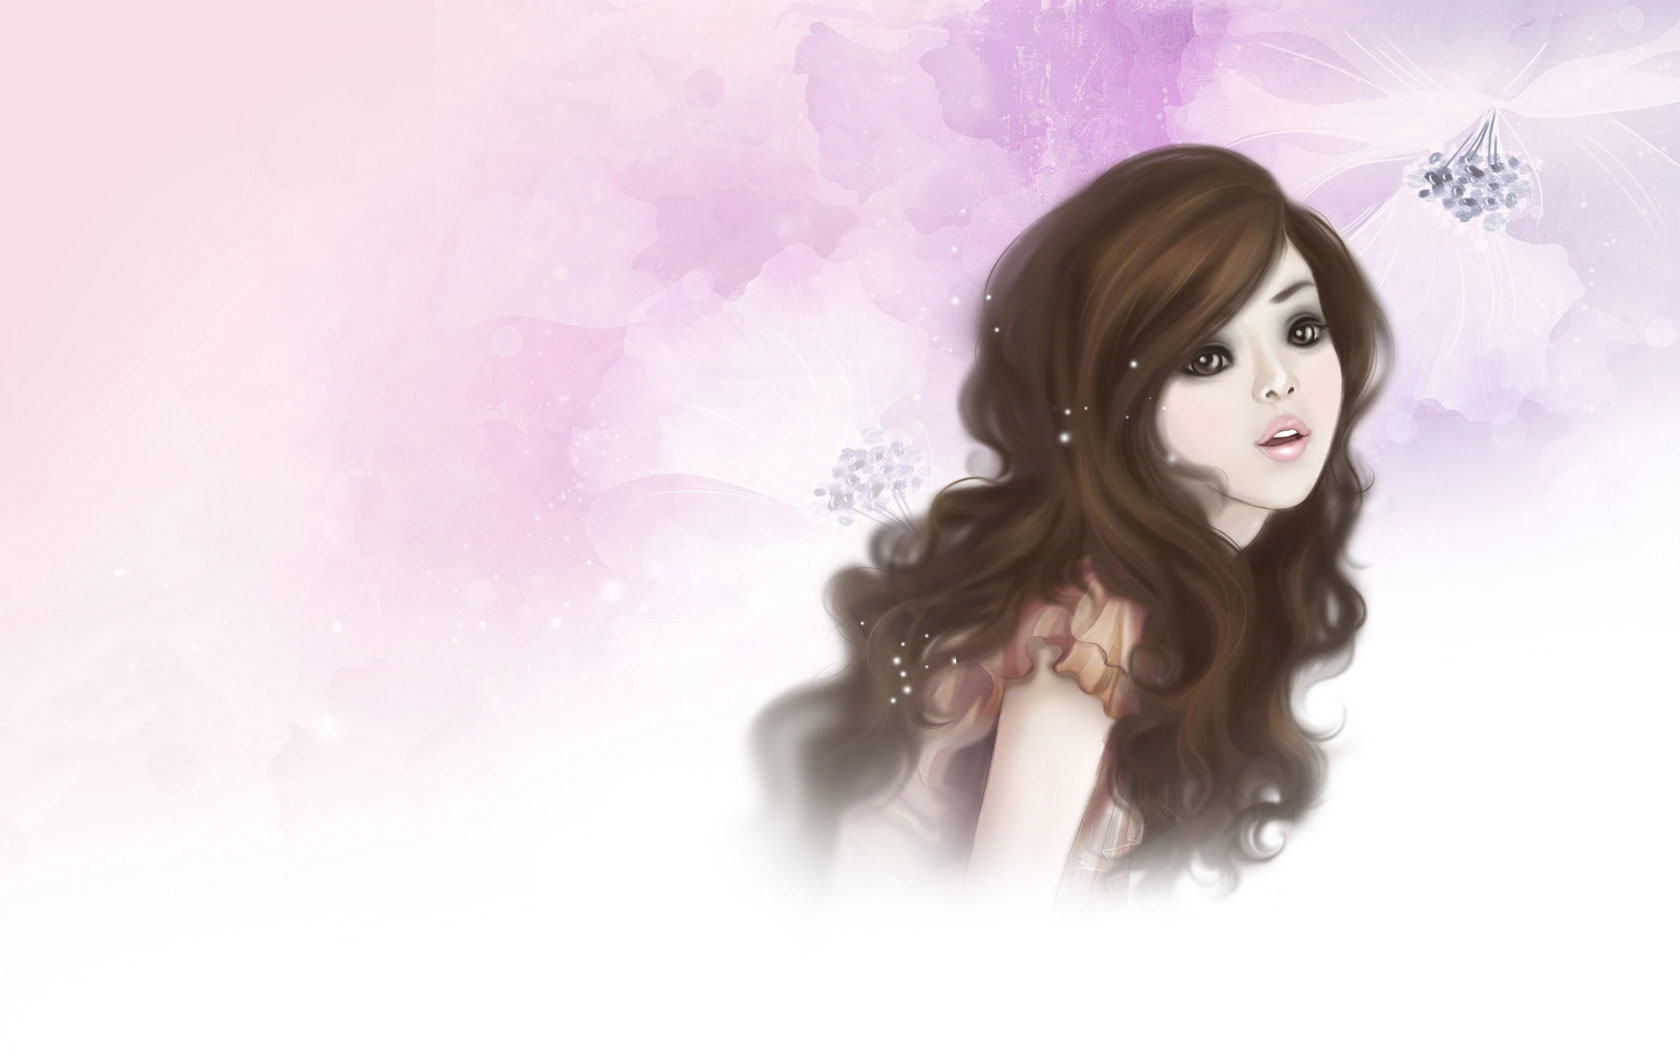 cartoon Love Girl Wallpaper : 1680x1050 Pretty cartoon Girl desktop Pc and Mac wallpaper